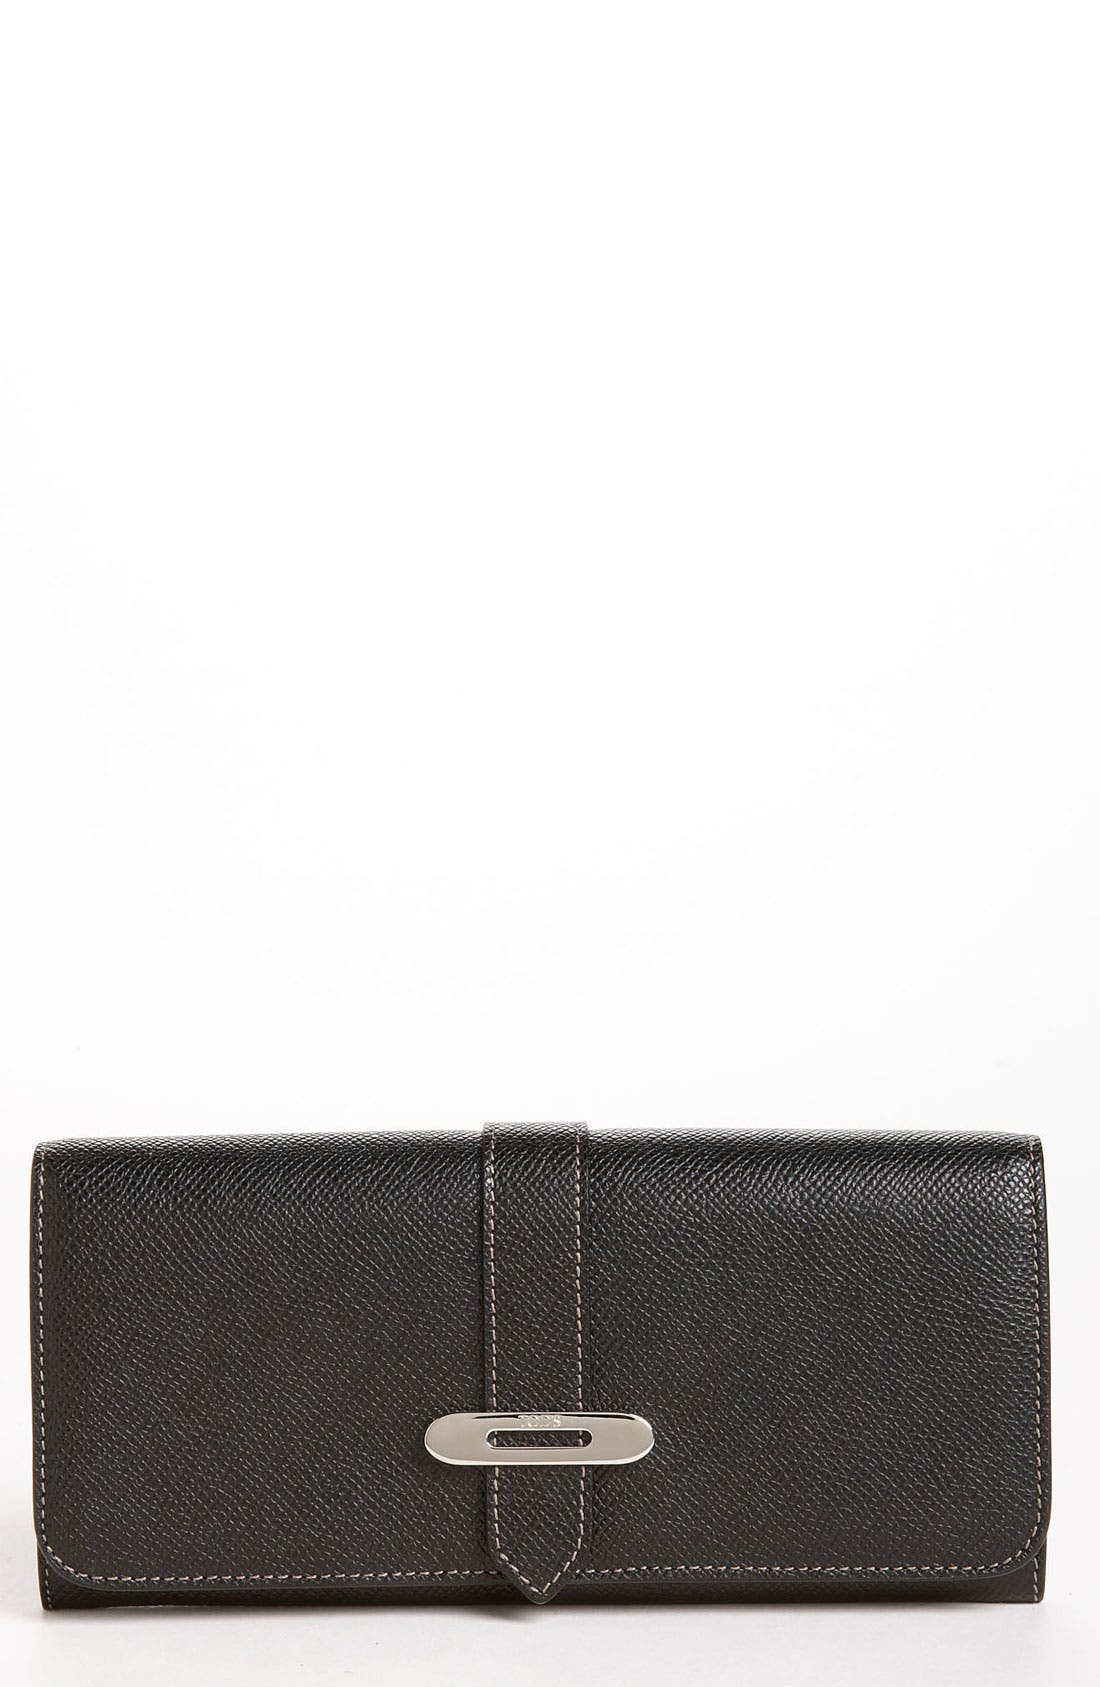 Main Image - Tod's 'Mini Rounded' Wallet